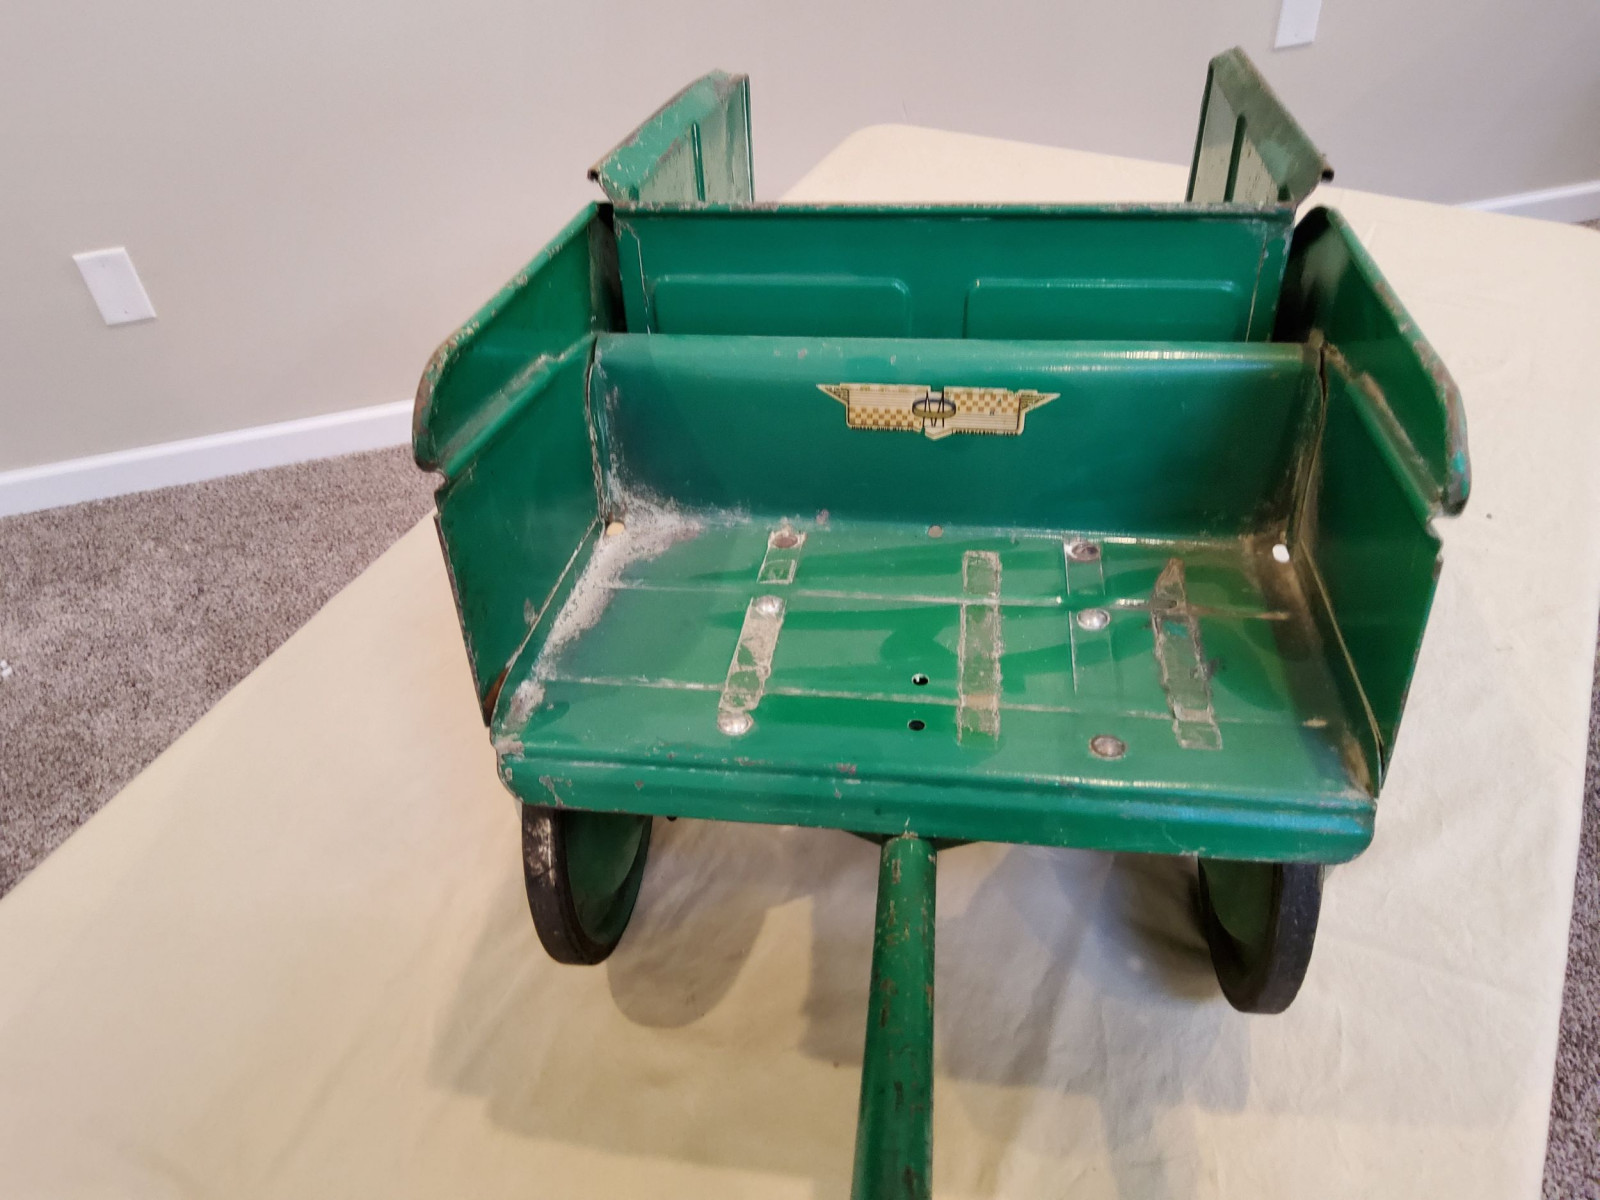 1962 Murray wagon Pedal Car - Image 5